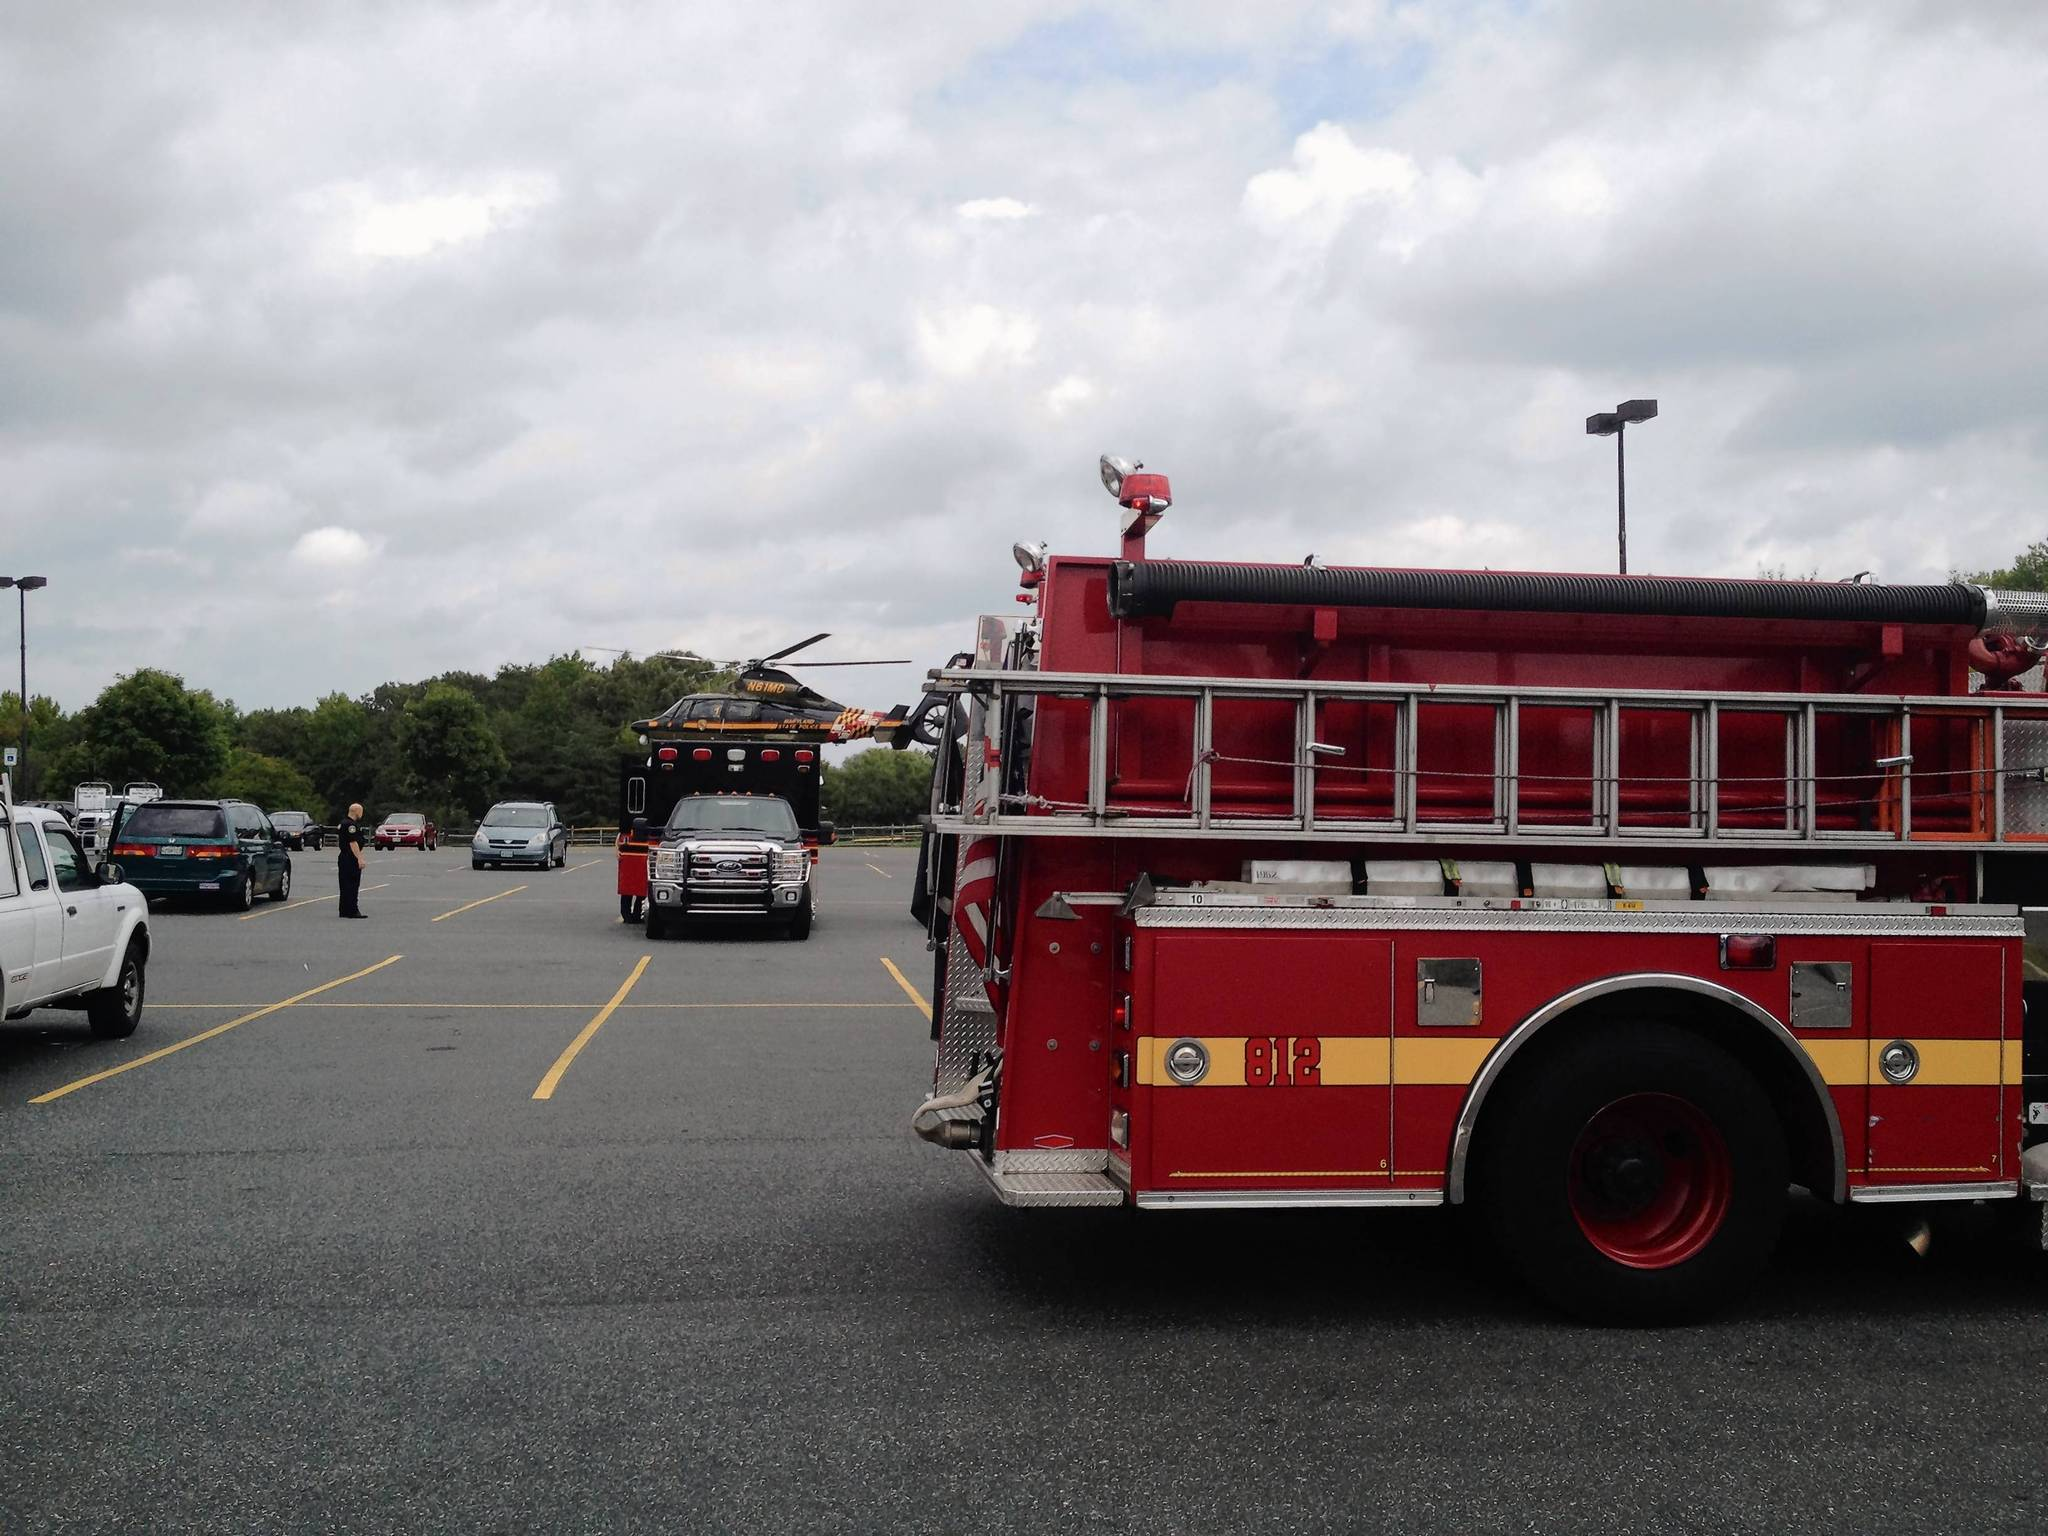 The Maryland State Police medevac helicopter landed in the parking lot of Edgewood Plaza to fly a 70-year-old man hit by a car early Wednesday afternoon to a regional trauma center.